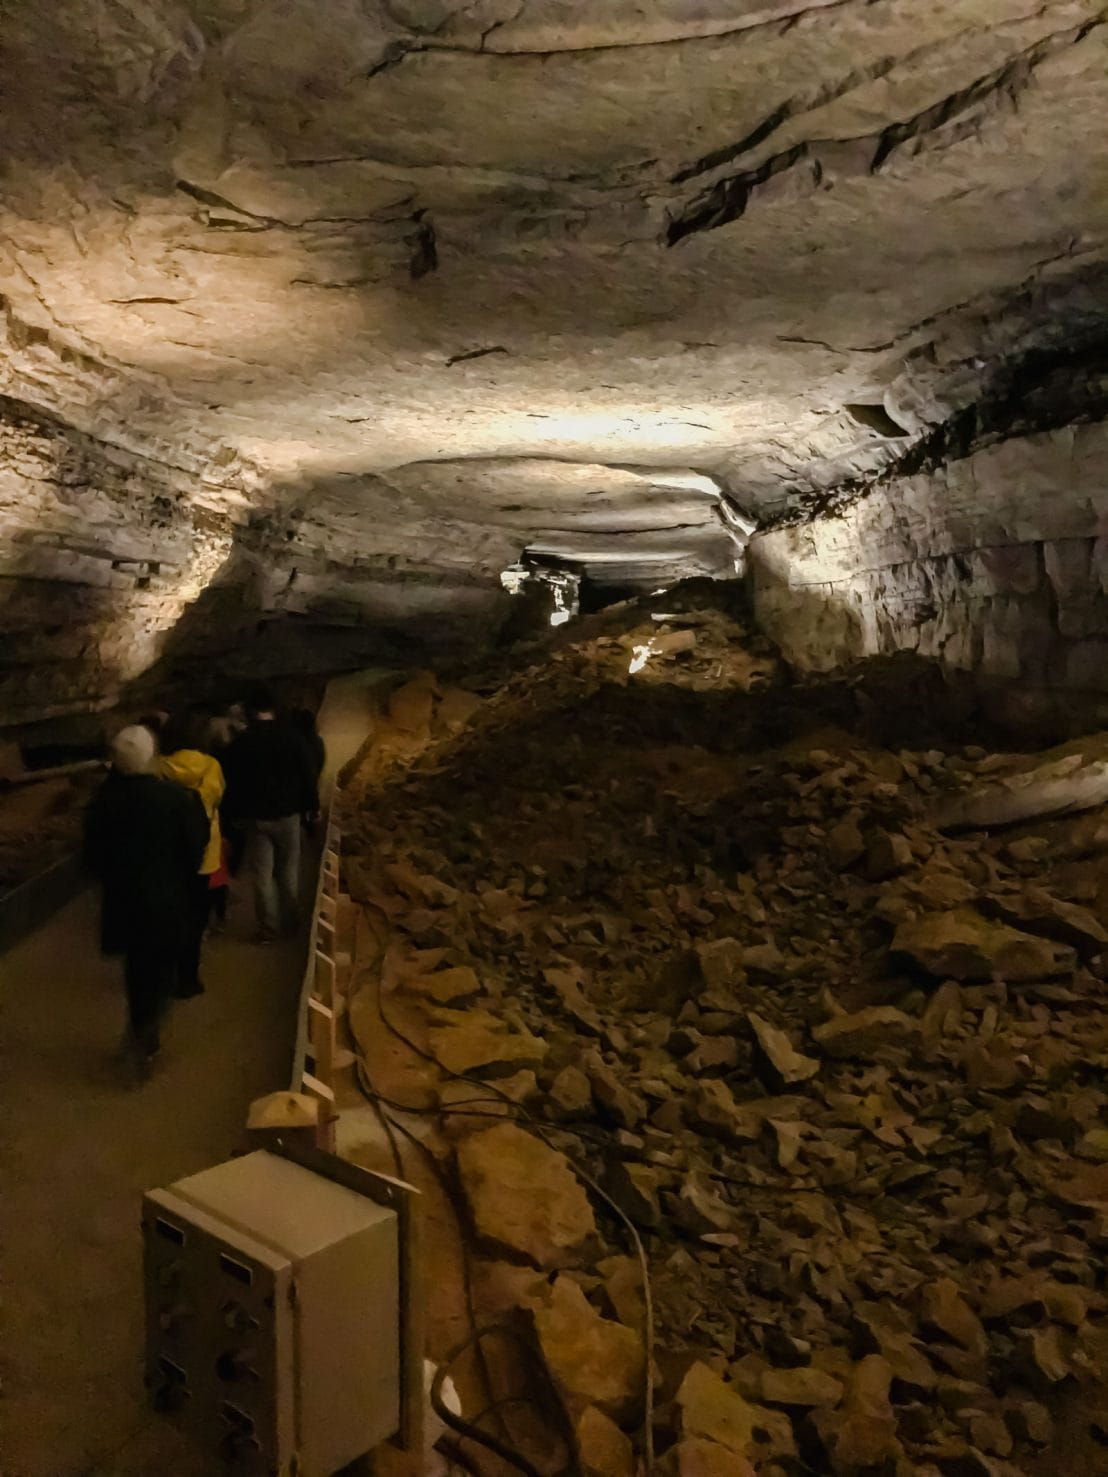 A guide to day trips from Nashville featuring Mammoth Cave National Park in KY.